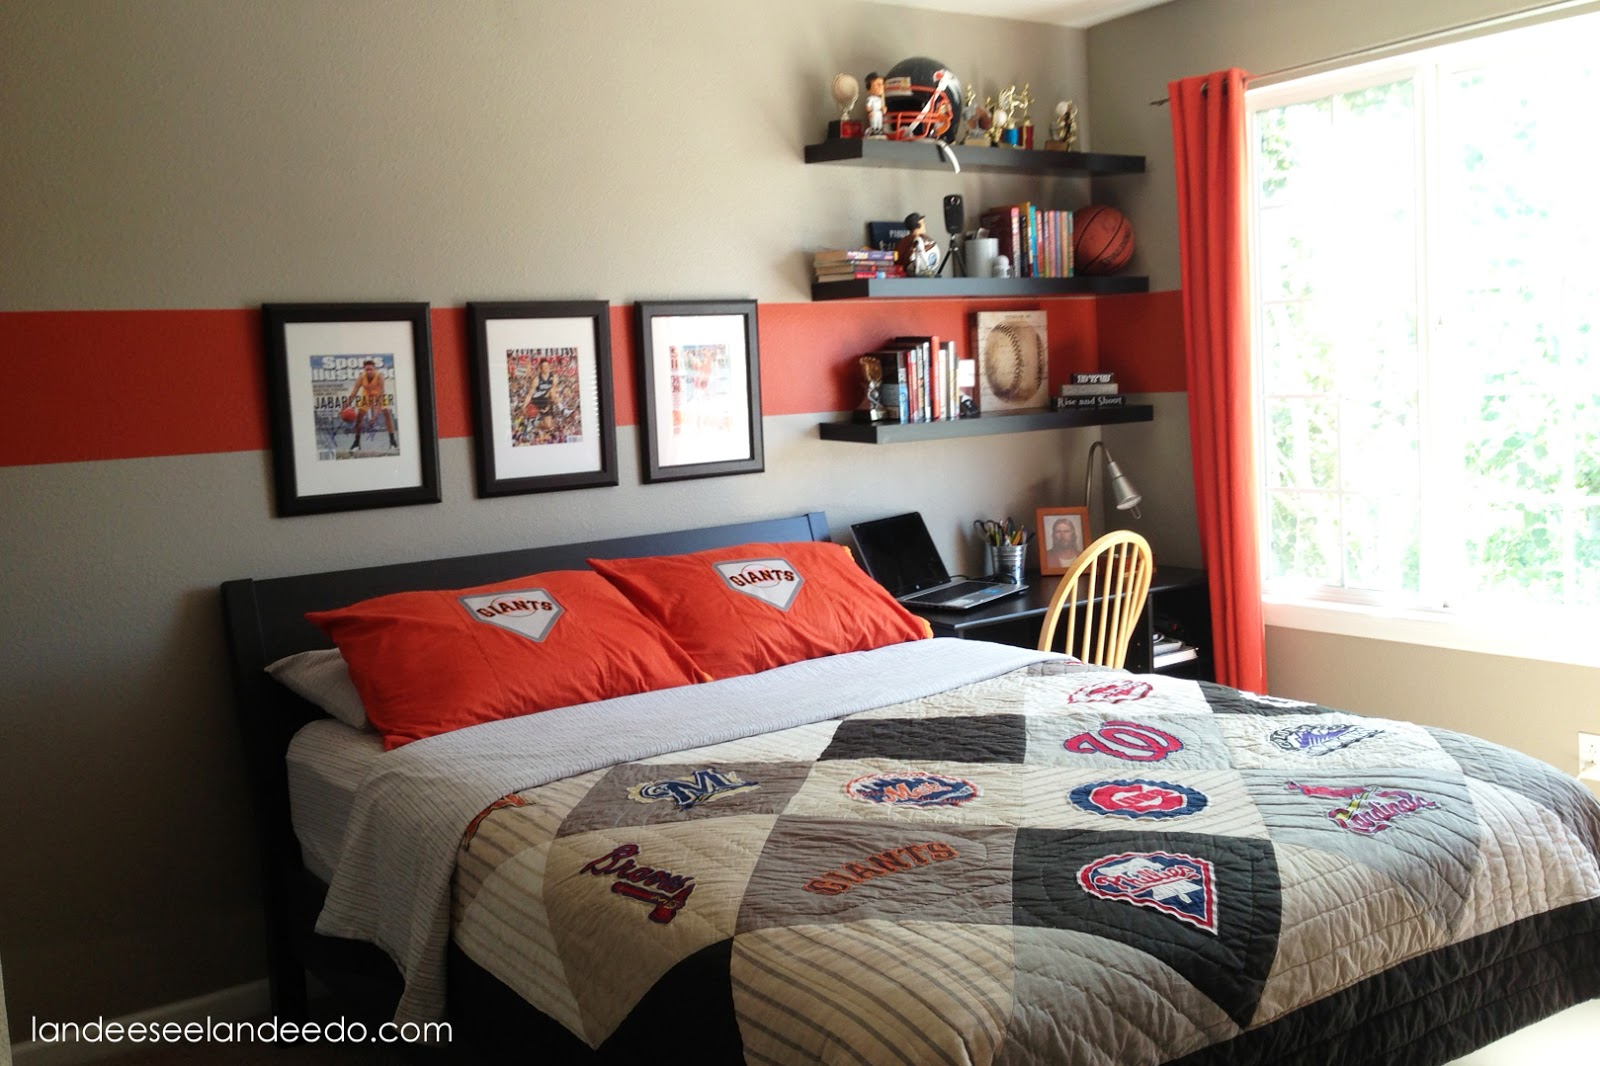 Teen Boy Bedroom Reveal - landeelu.com on Small Bedroom Ideas For Teenage Guys  id=28434